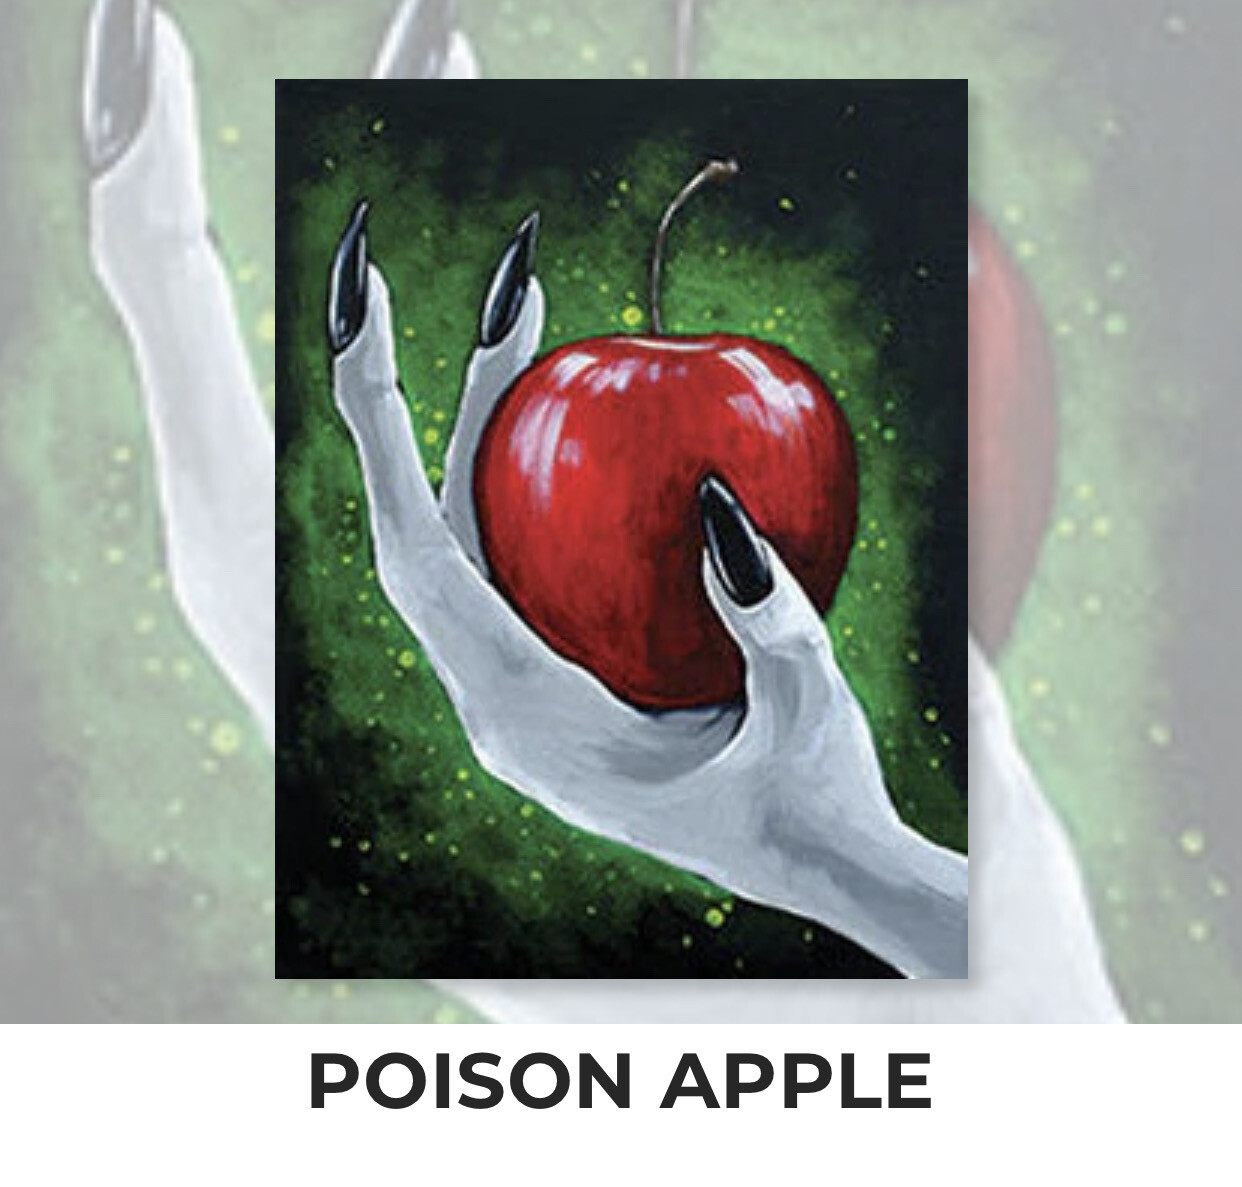 Poison Apple ADULT Acrylic Paint On Canvas DIY Art Kit - 3 Week Special Order